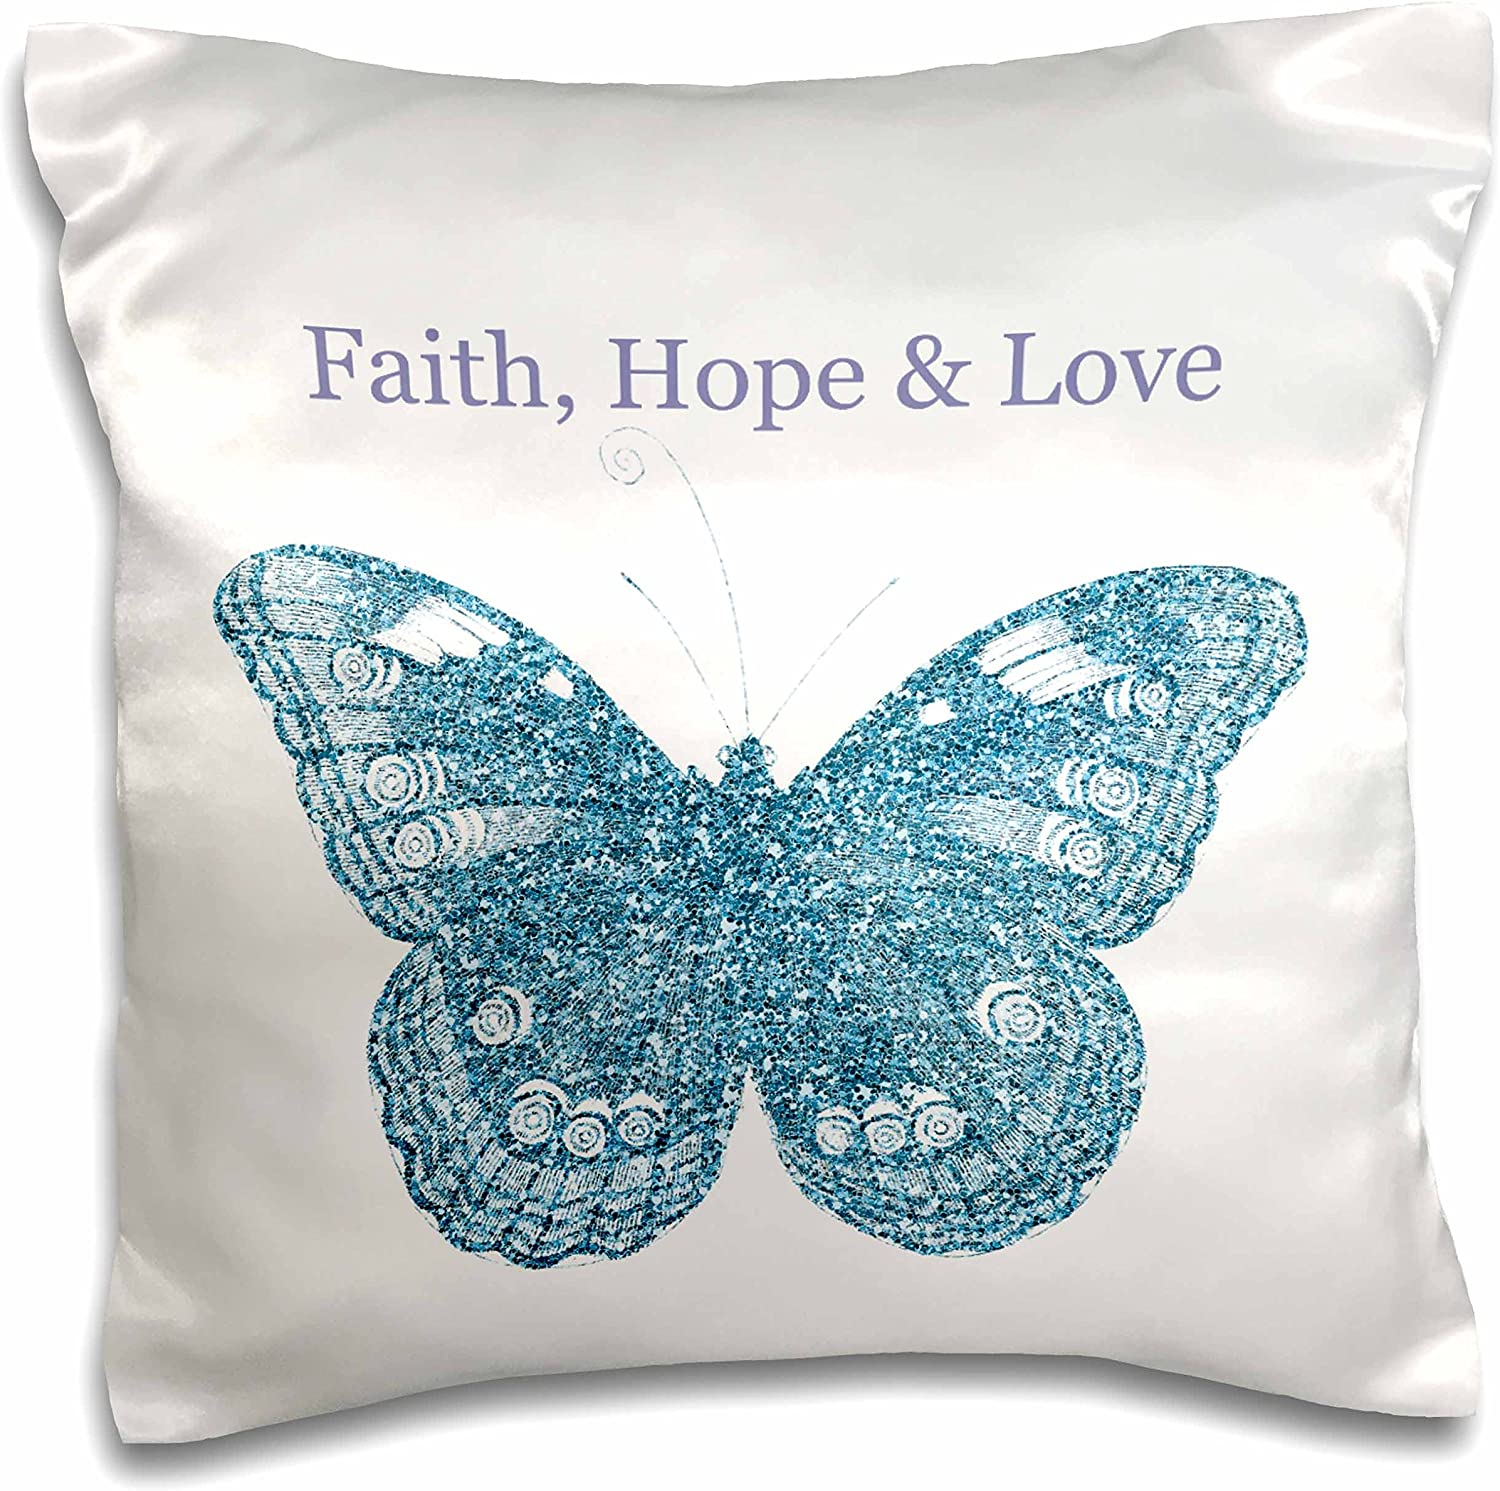 Details about  /Faith Hope Love Courage Pink Cushion Cover Pillow Case Sofa Throw One Piece